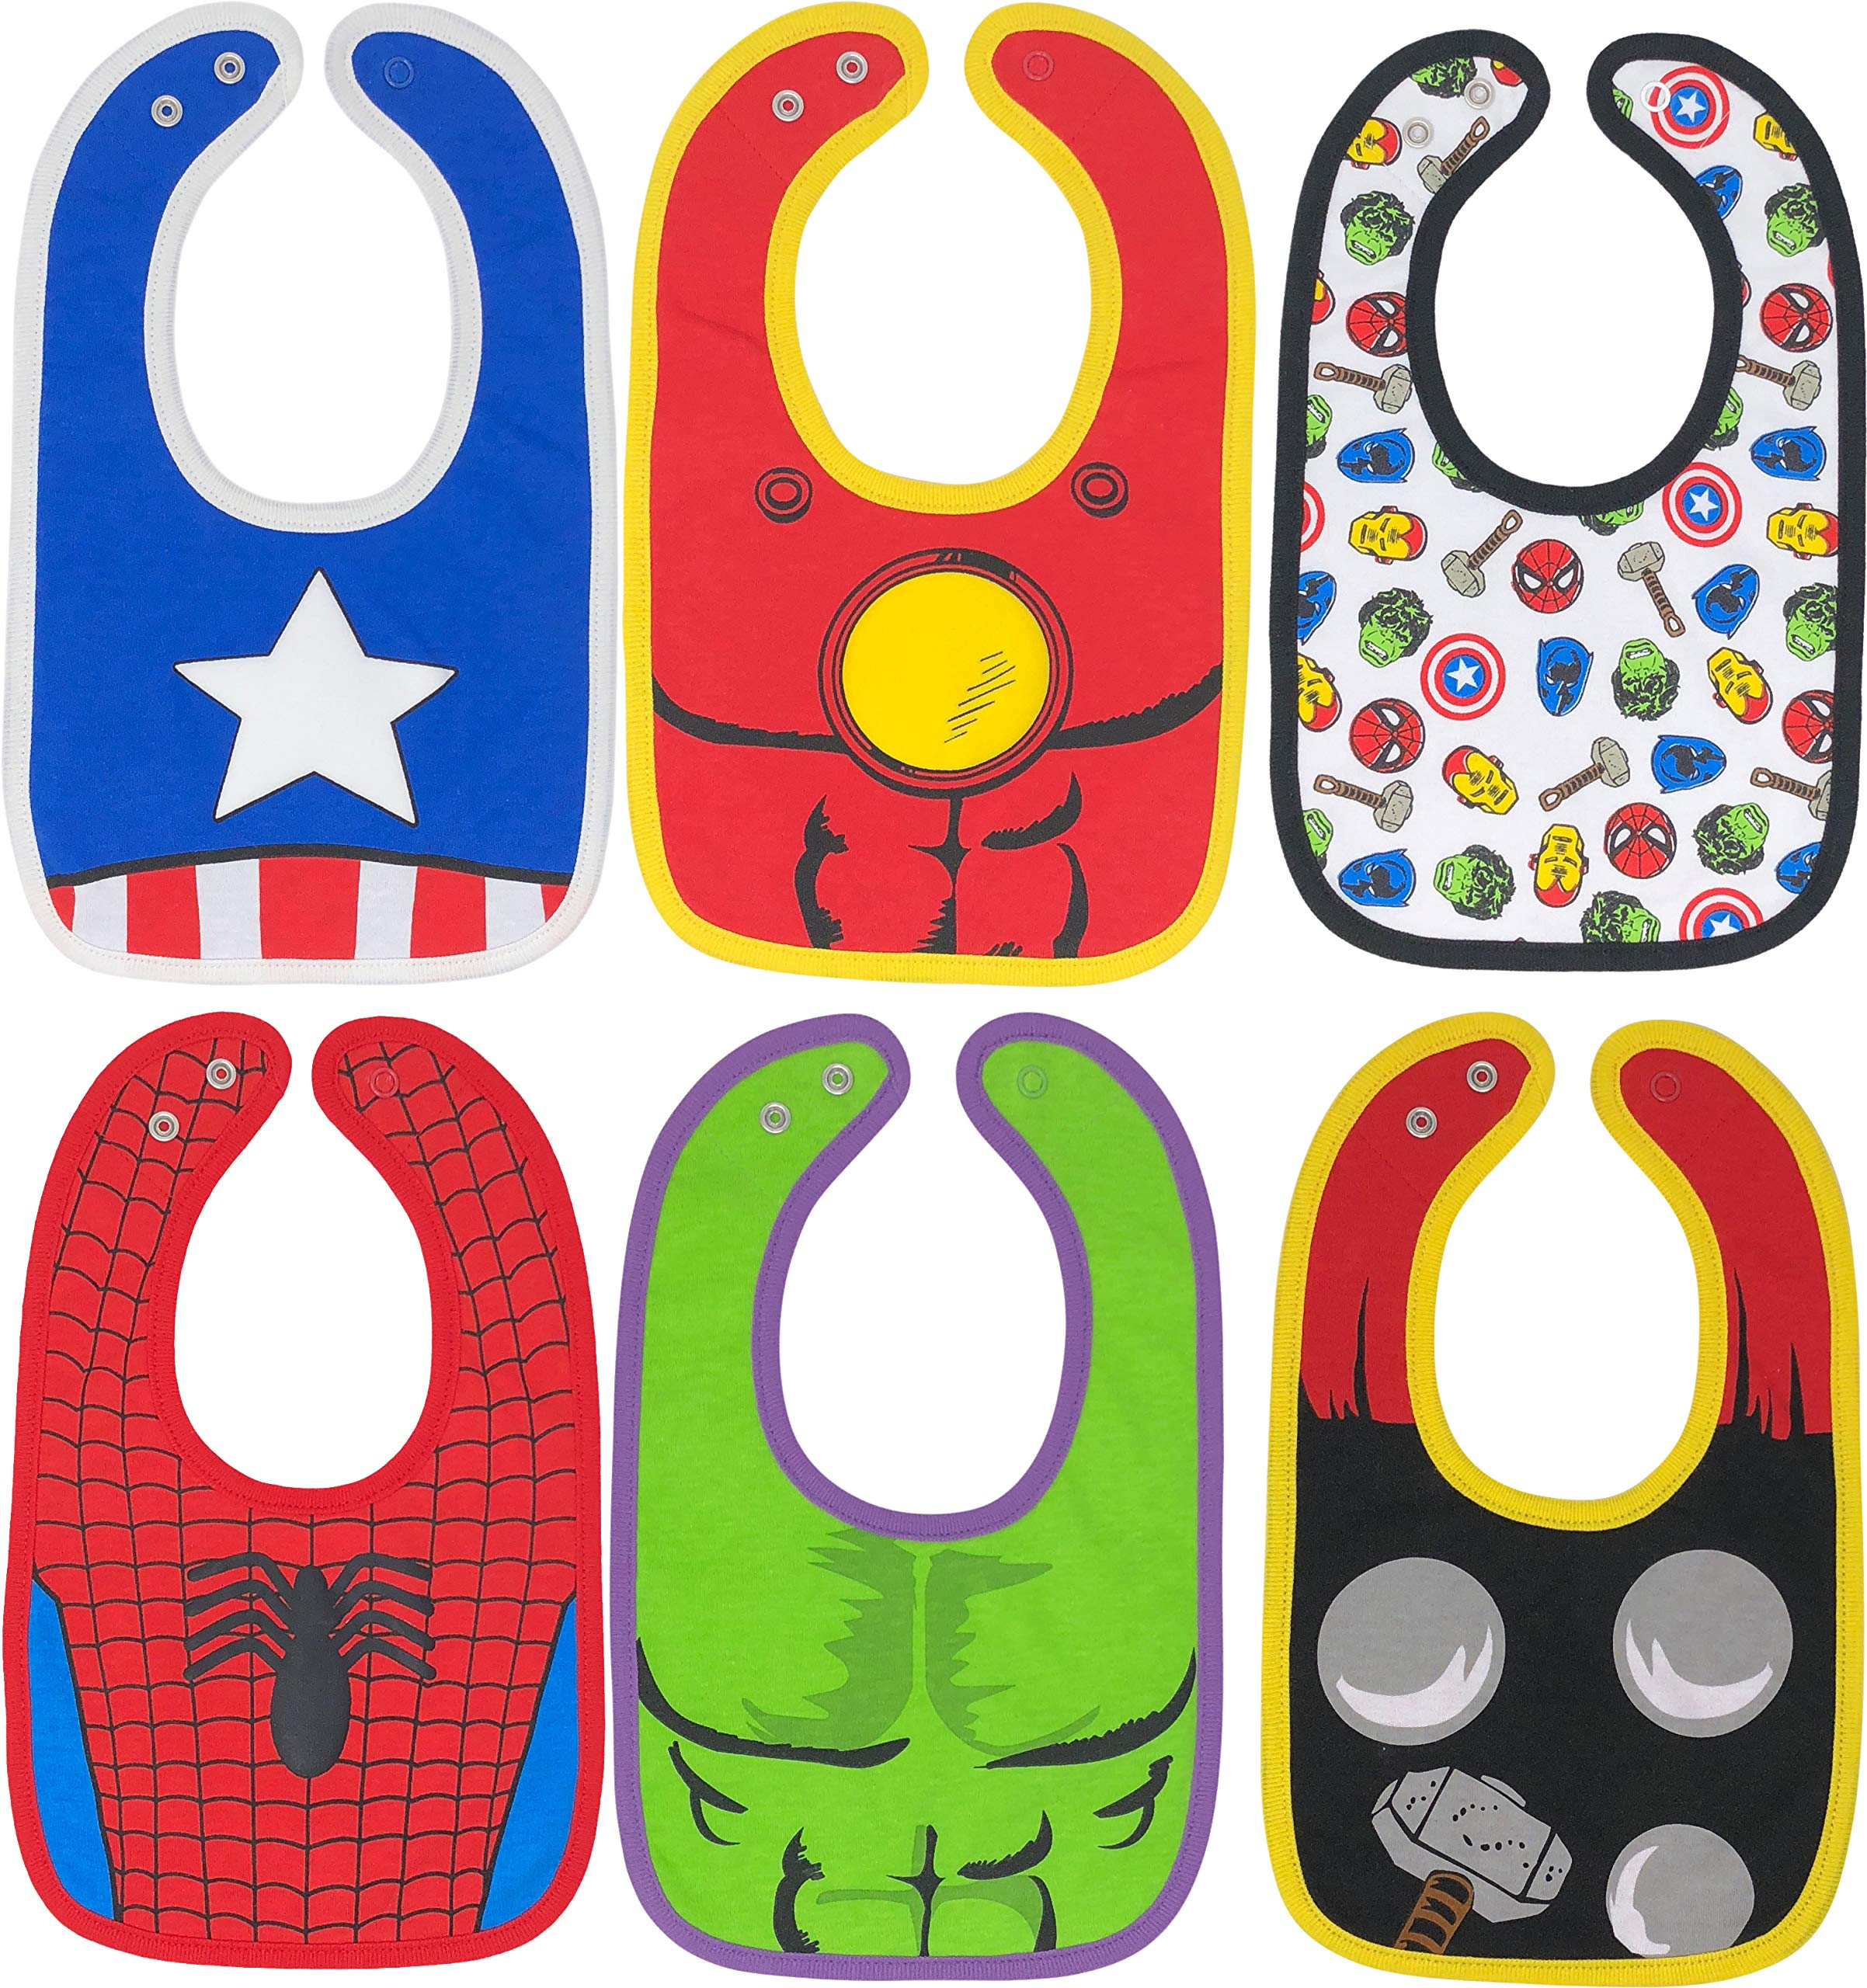 Marvel Avengers Baby Boys' Bibs 6 Pack Spiderman Hulk Thor Iron Man Captain America